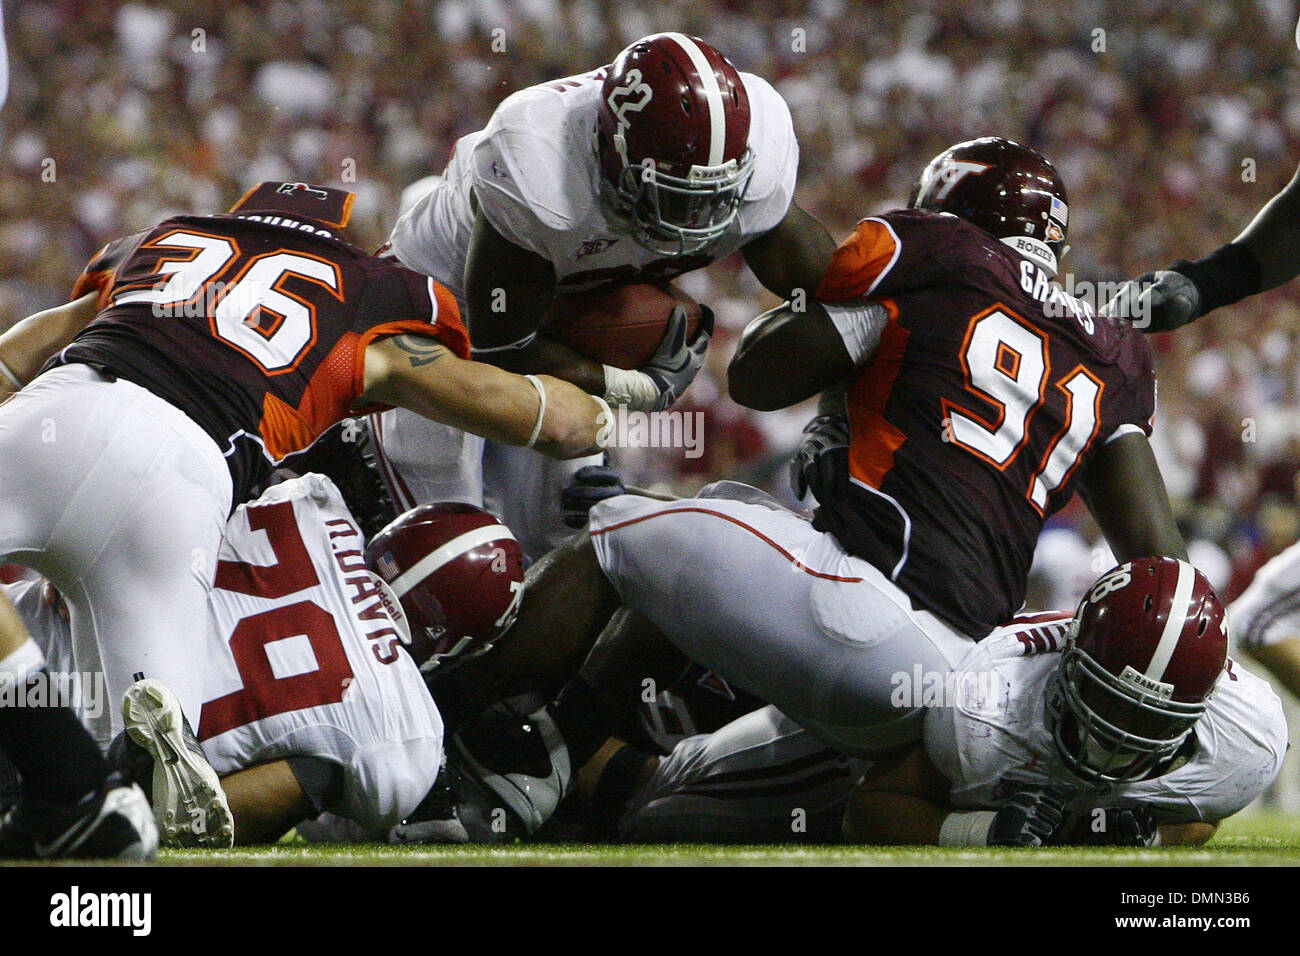 Sep 05, 2009 - Atlanta, Georgia, USA - NCAA Football - Alabama's MARK INGRAM (22) dives over Virginia Tech's JOHN GRAVES (91) and JAKE JOHNSON (36) during the second half of their season opener in the Georgia Dome (Credit Image: © Josh D. Weiss/ZUMA Press) - Stock Image